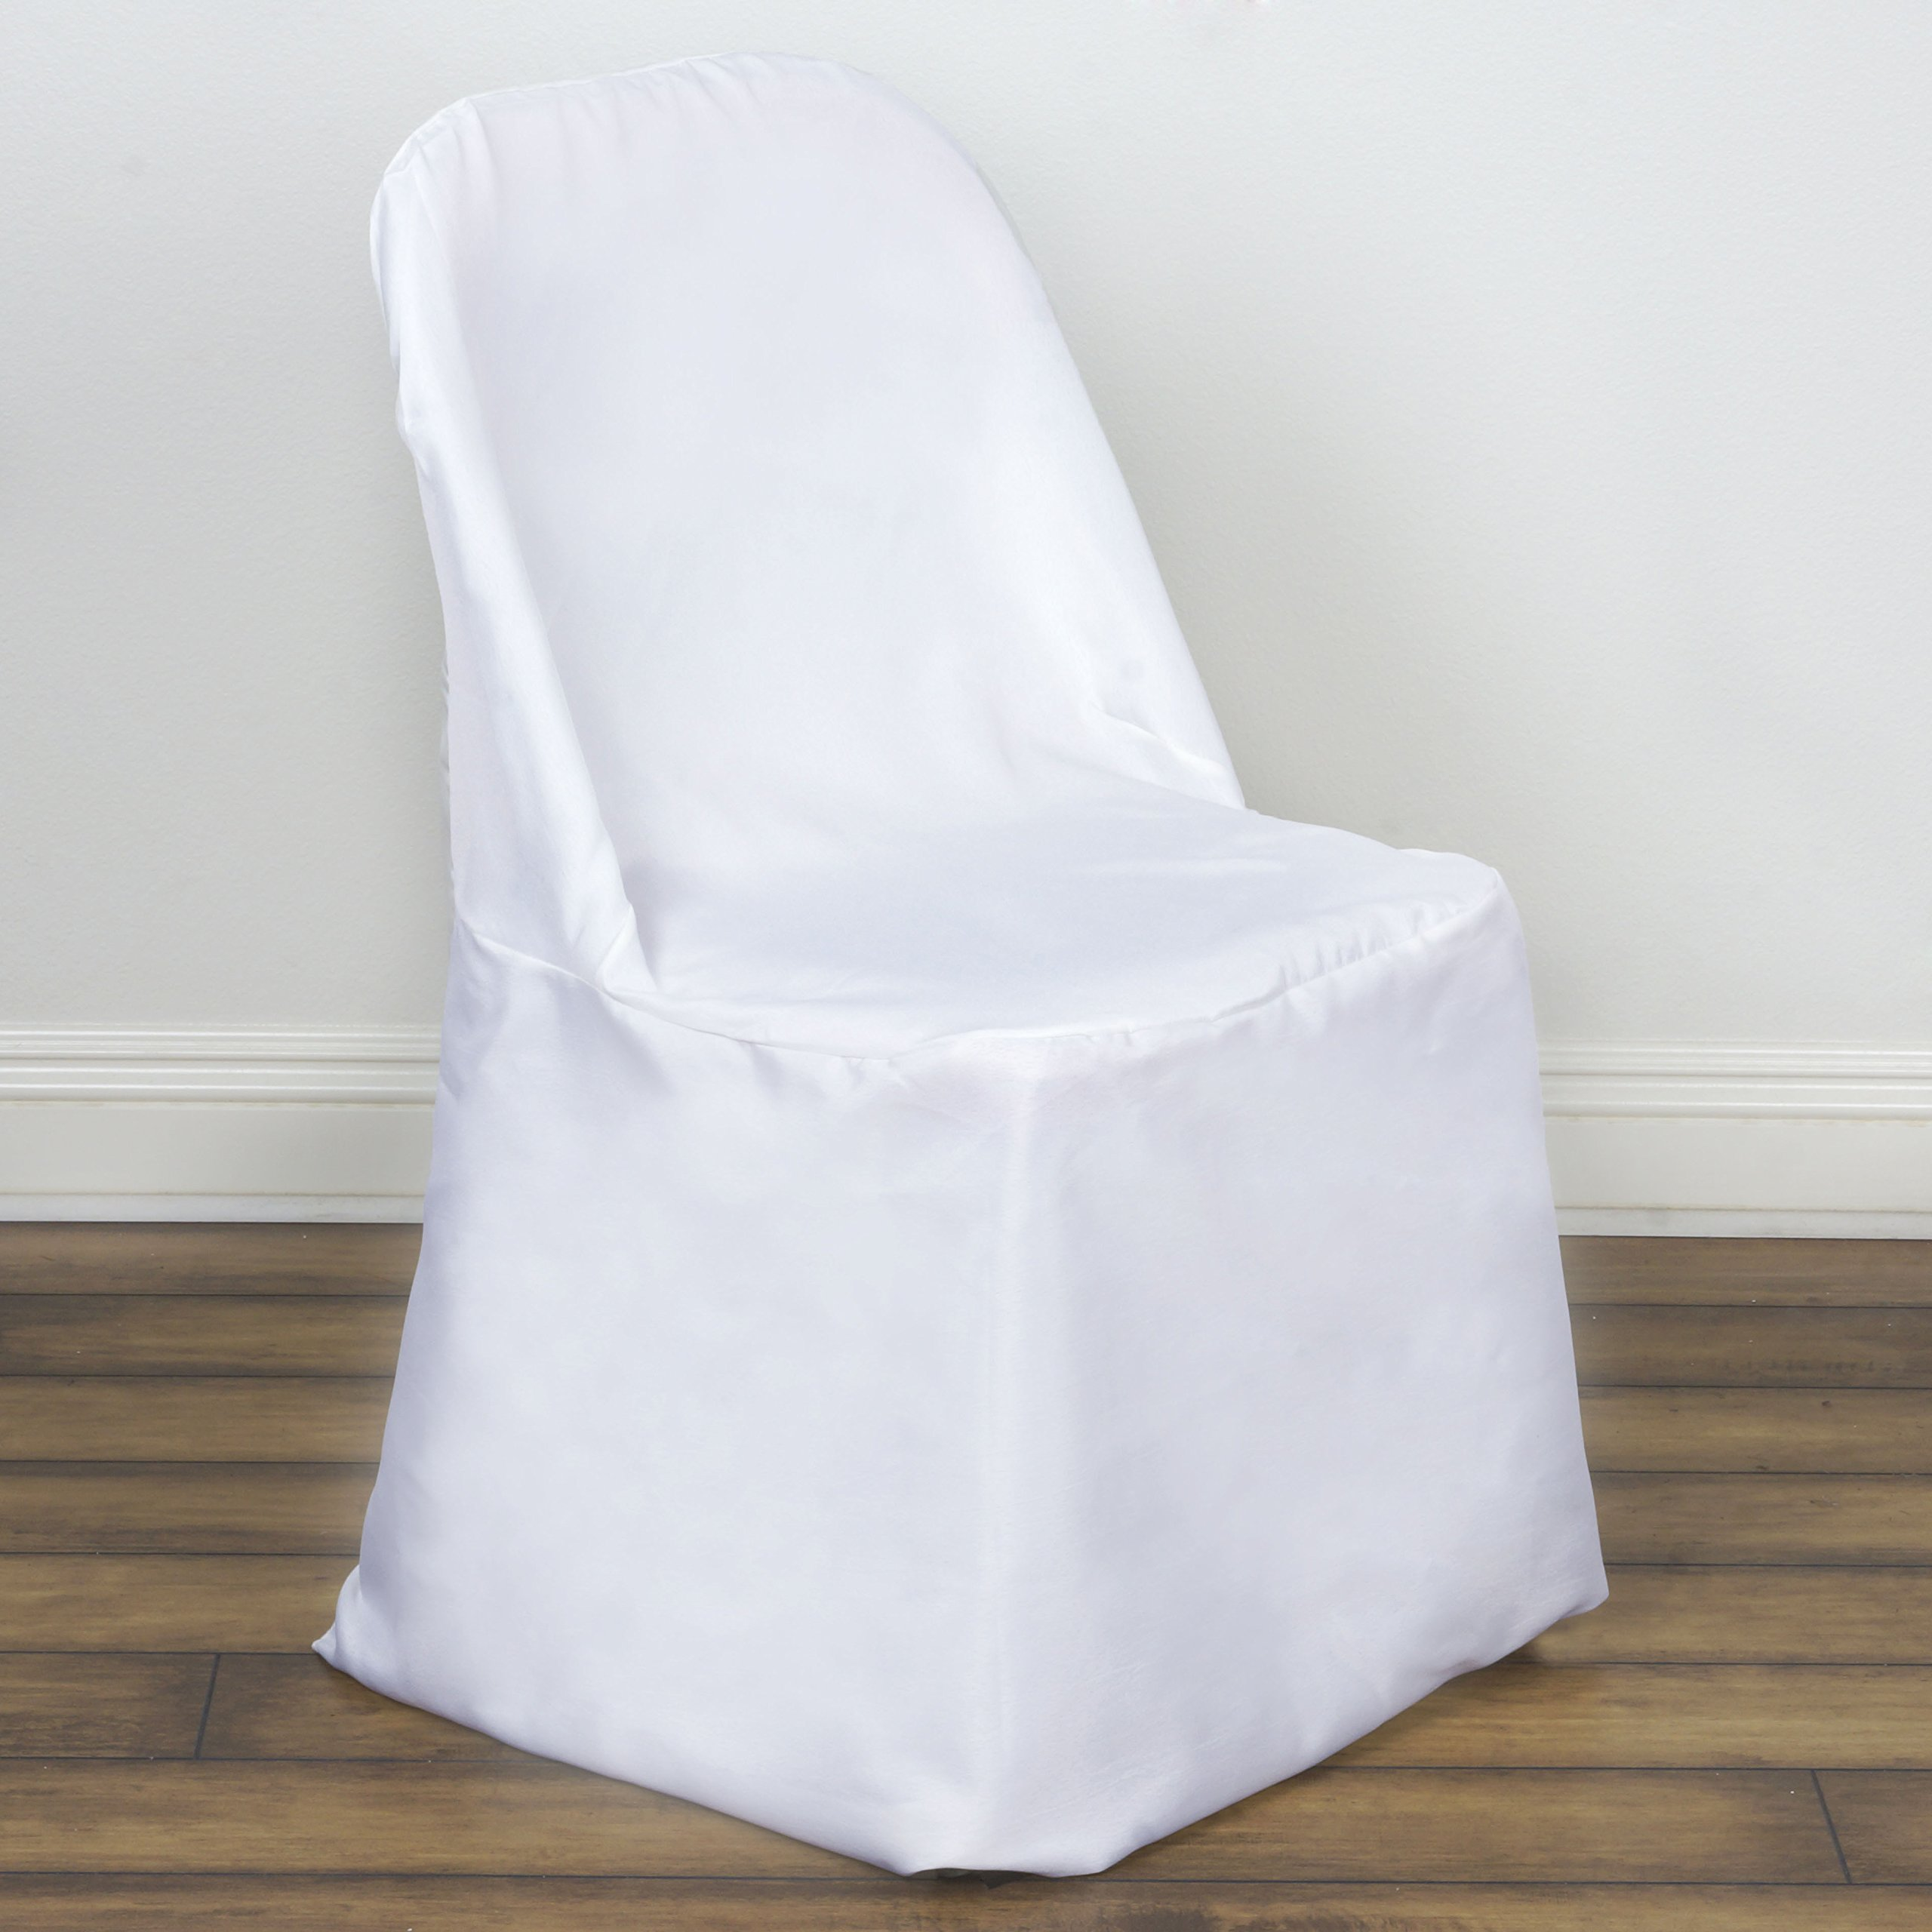 BalsaCircle 10 pcs White Polyester Folding Flat Chair Covers Slipcovers Wedding Party Reception Decorations